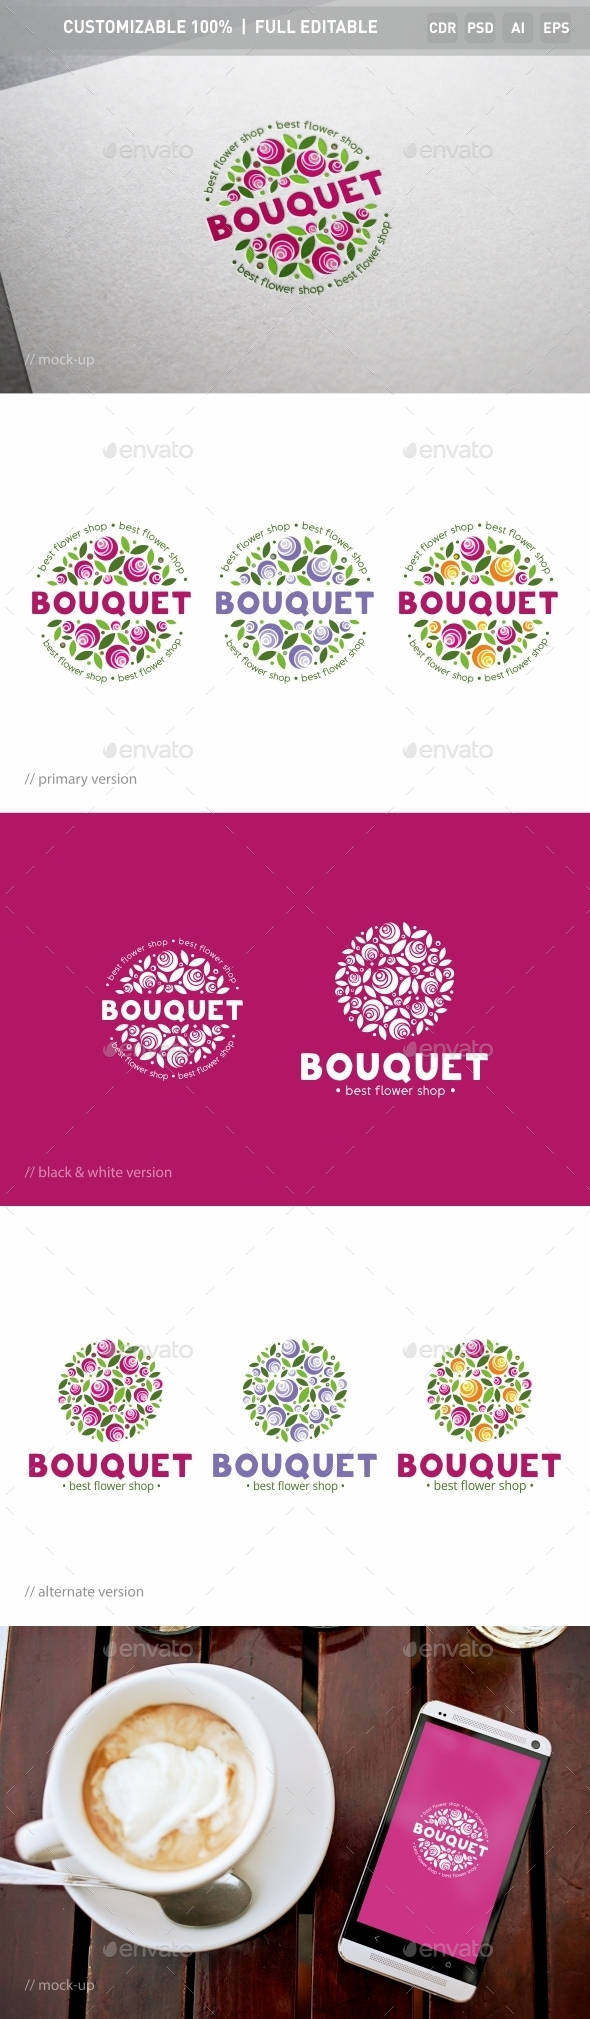 Bouquet of Flowers Logo Template - Nature Logo Templates